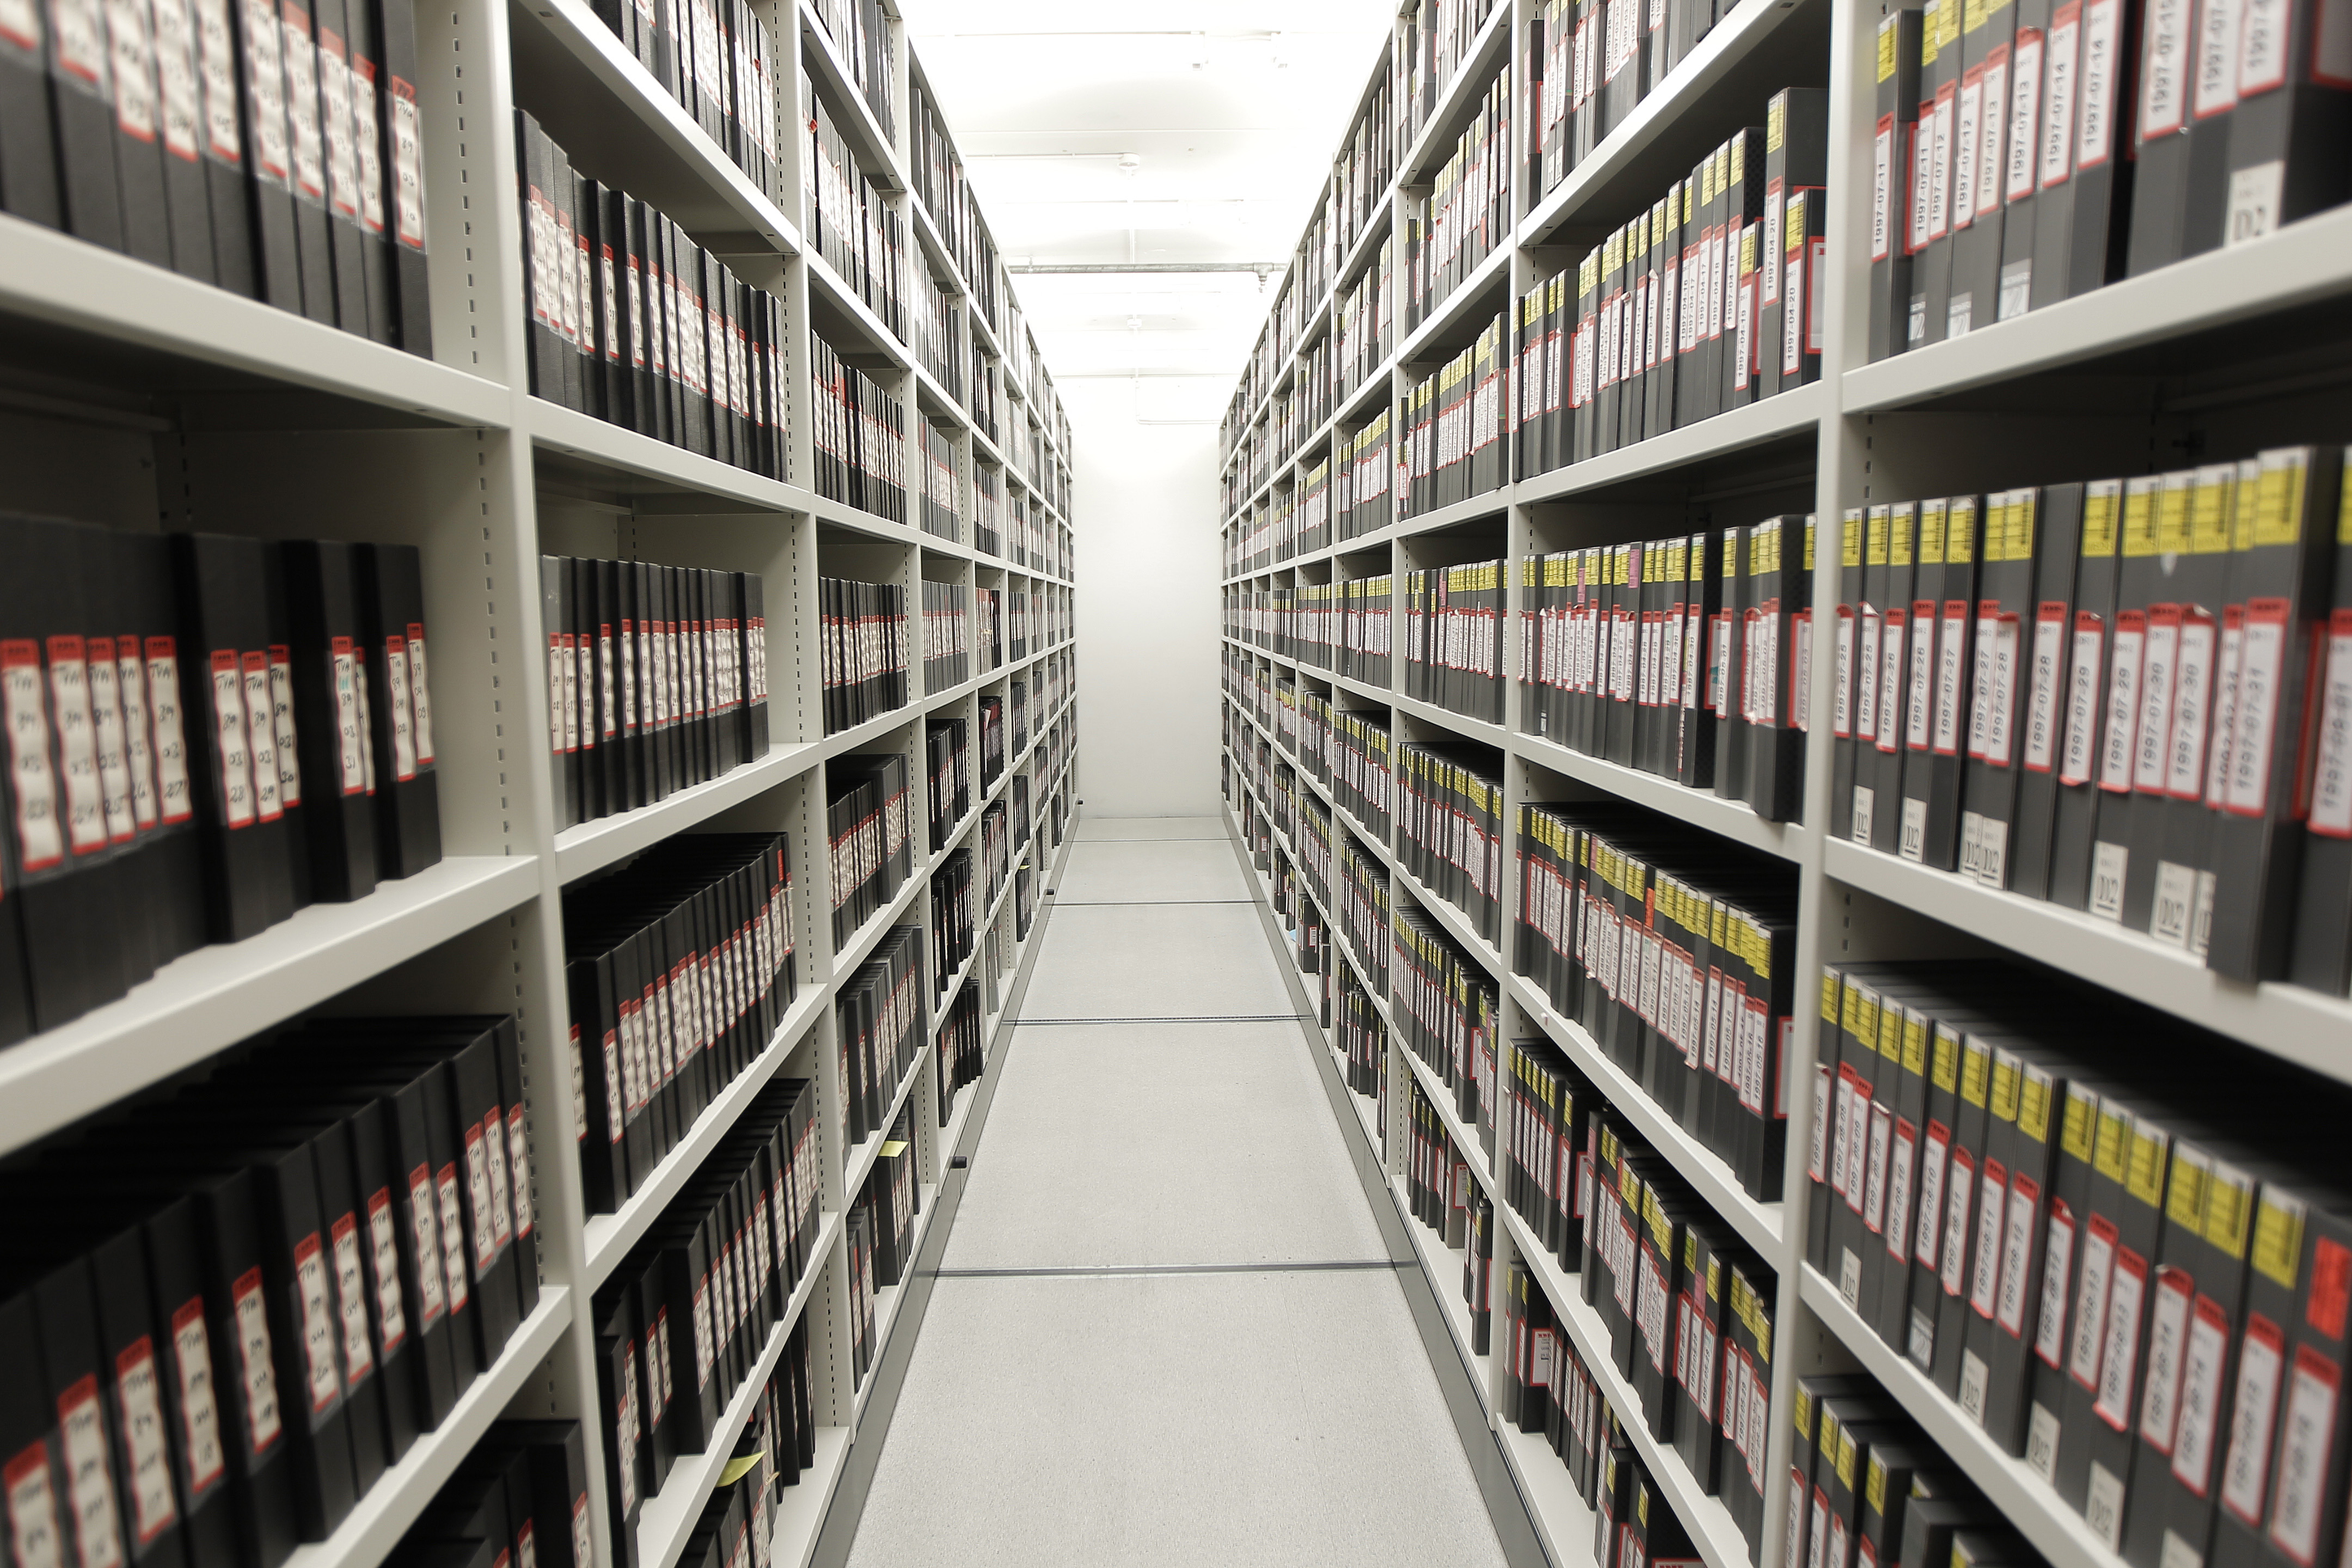 File:Video tape archive storage (6498637005).jpg - Wikimedia Commons